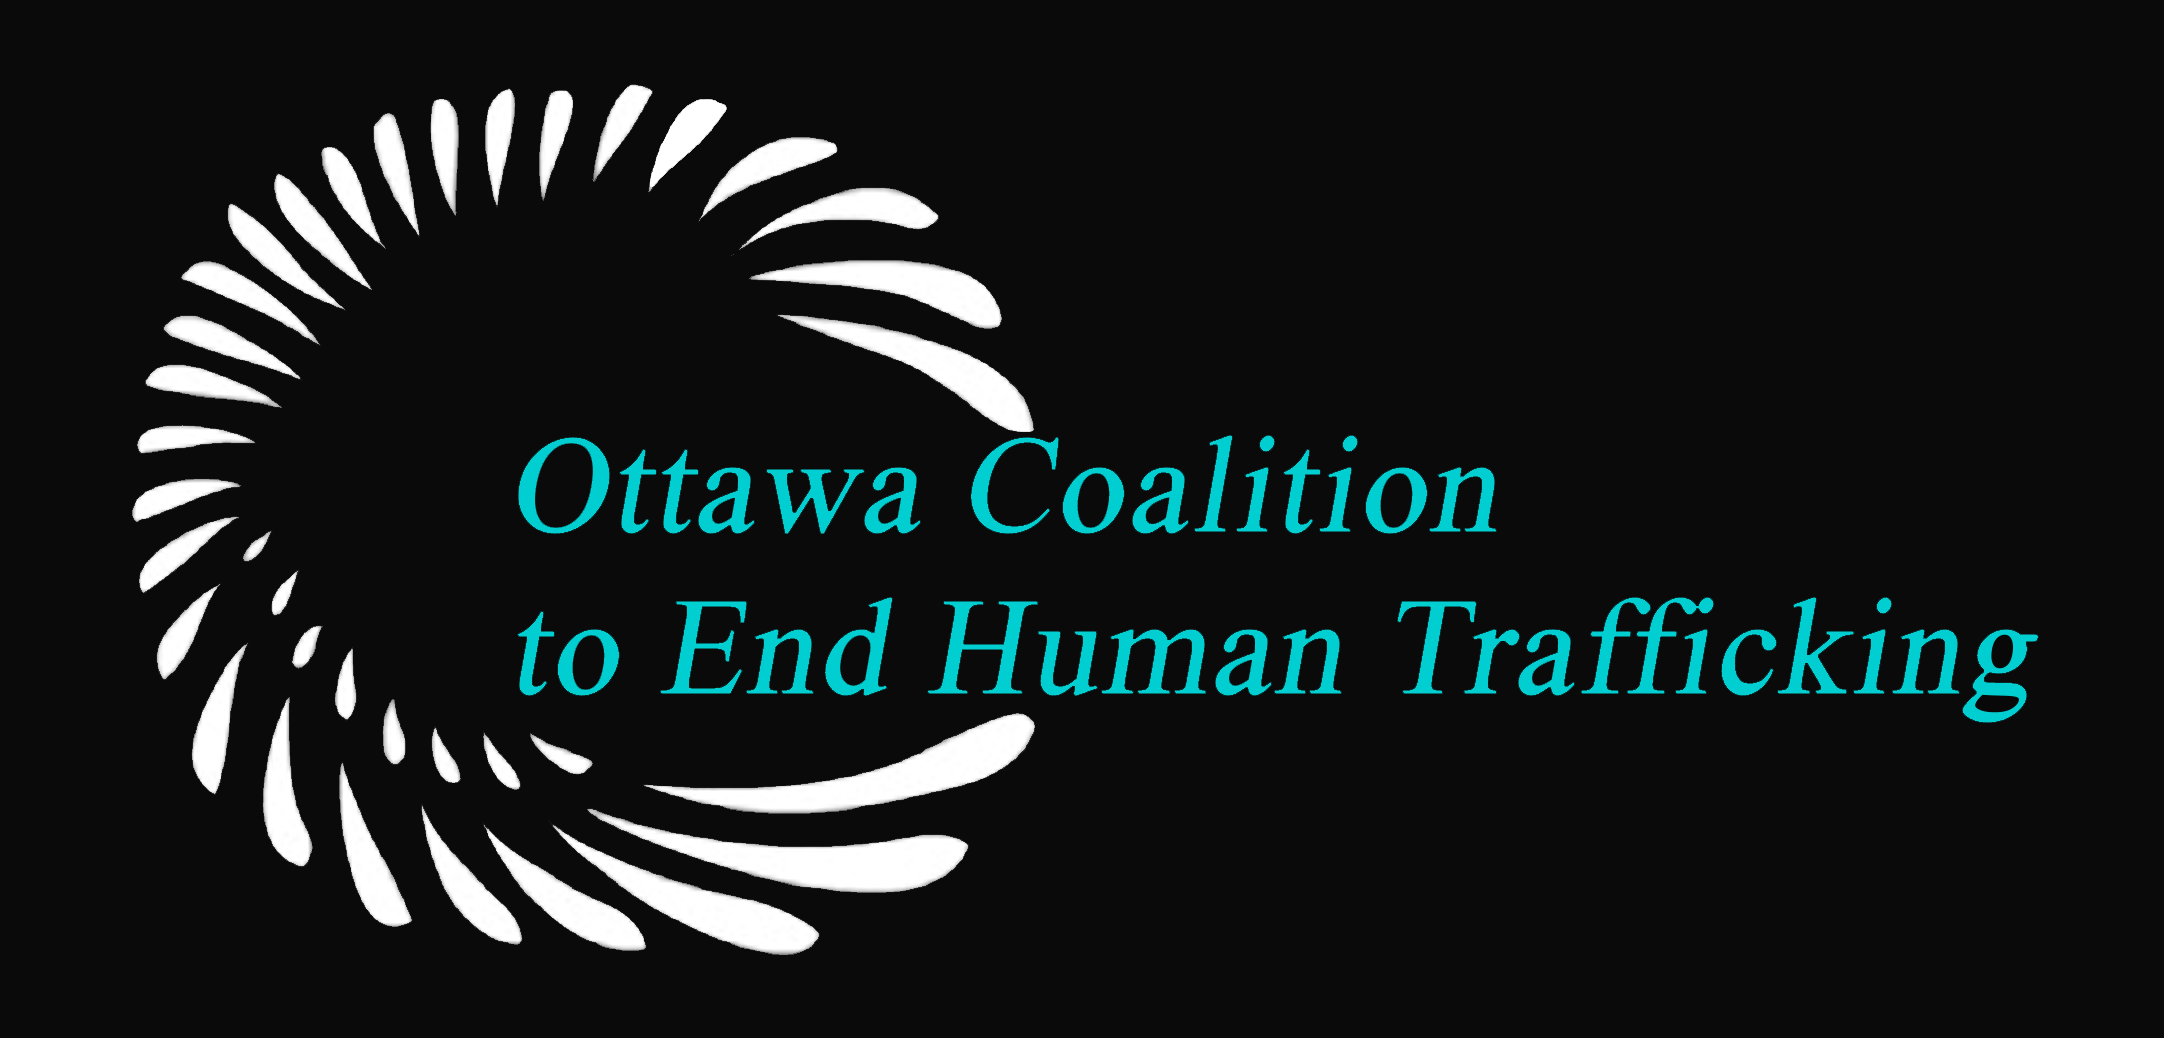 Ottawa Coalition to End Human Trafficking